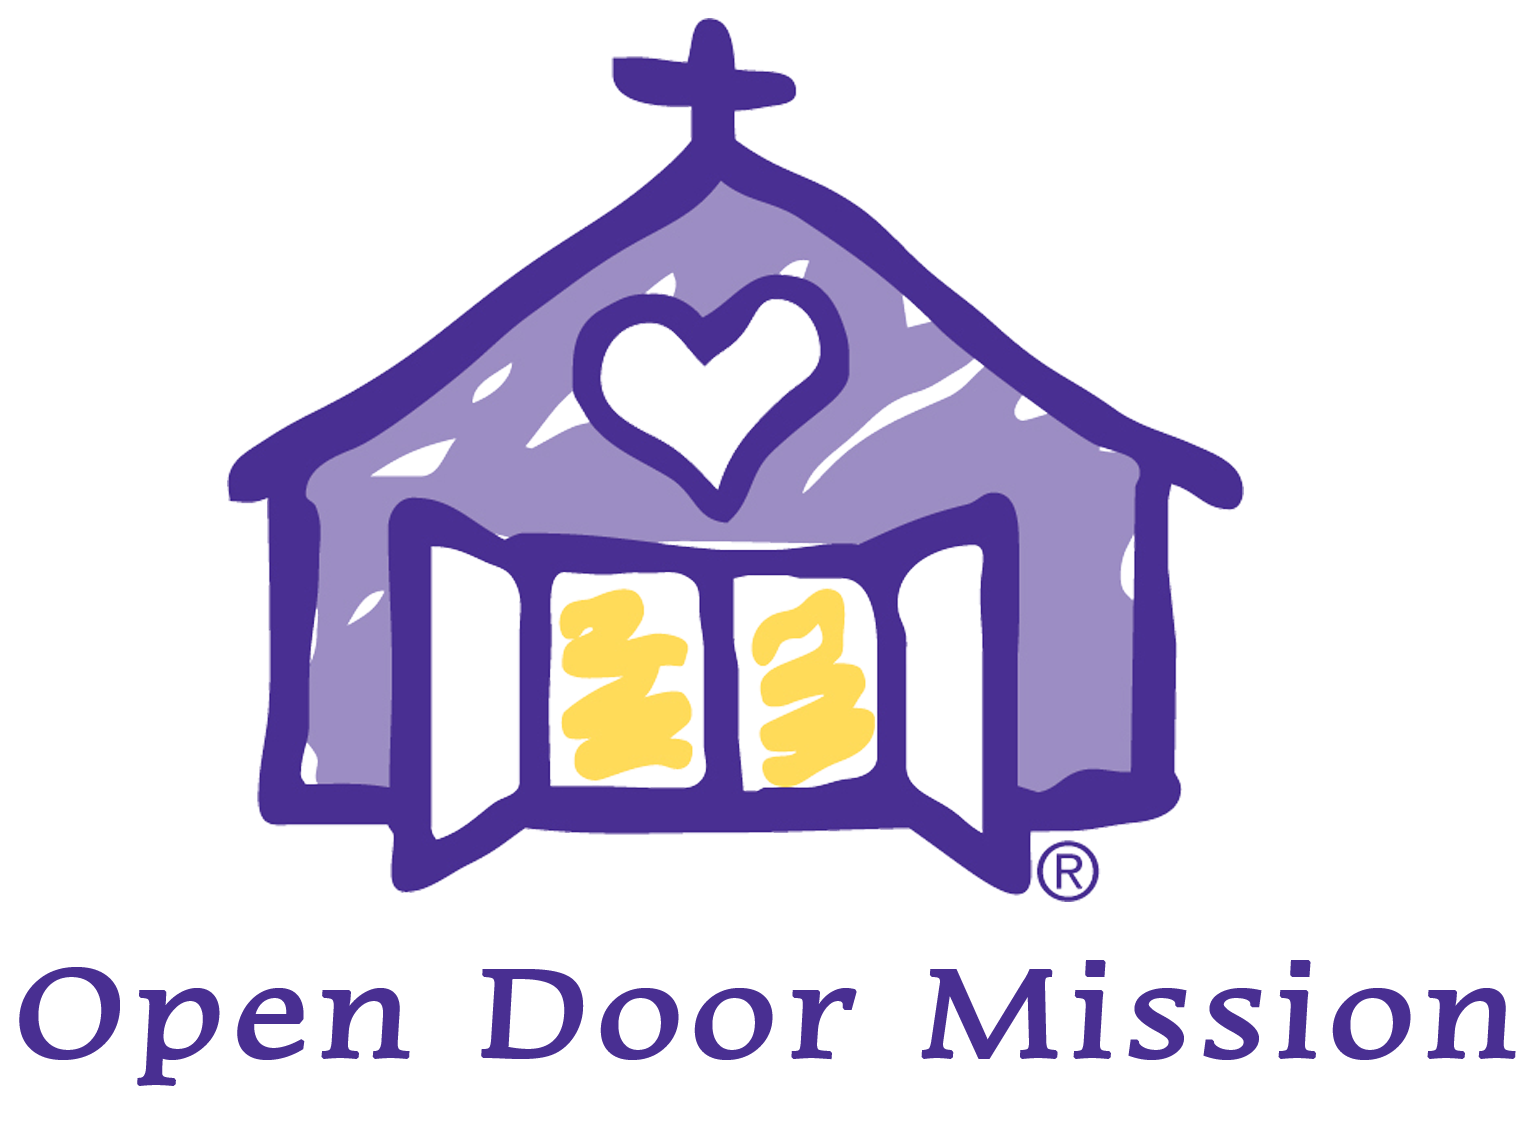 Mission house clipart picture free Index of /wp-content/uploads/2015/11/ picture free